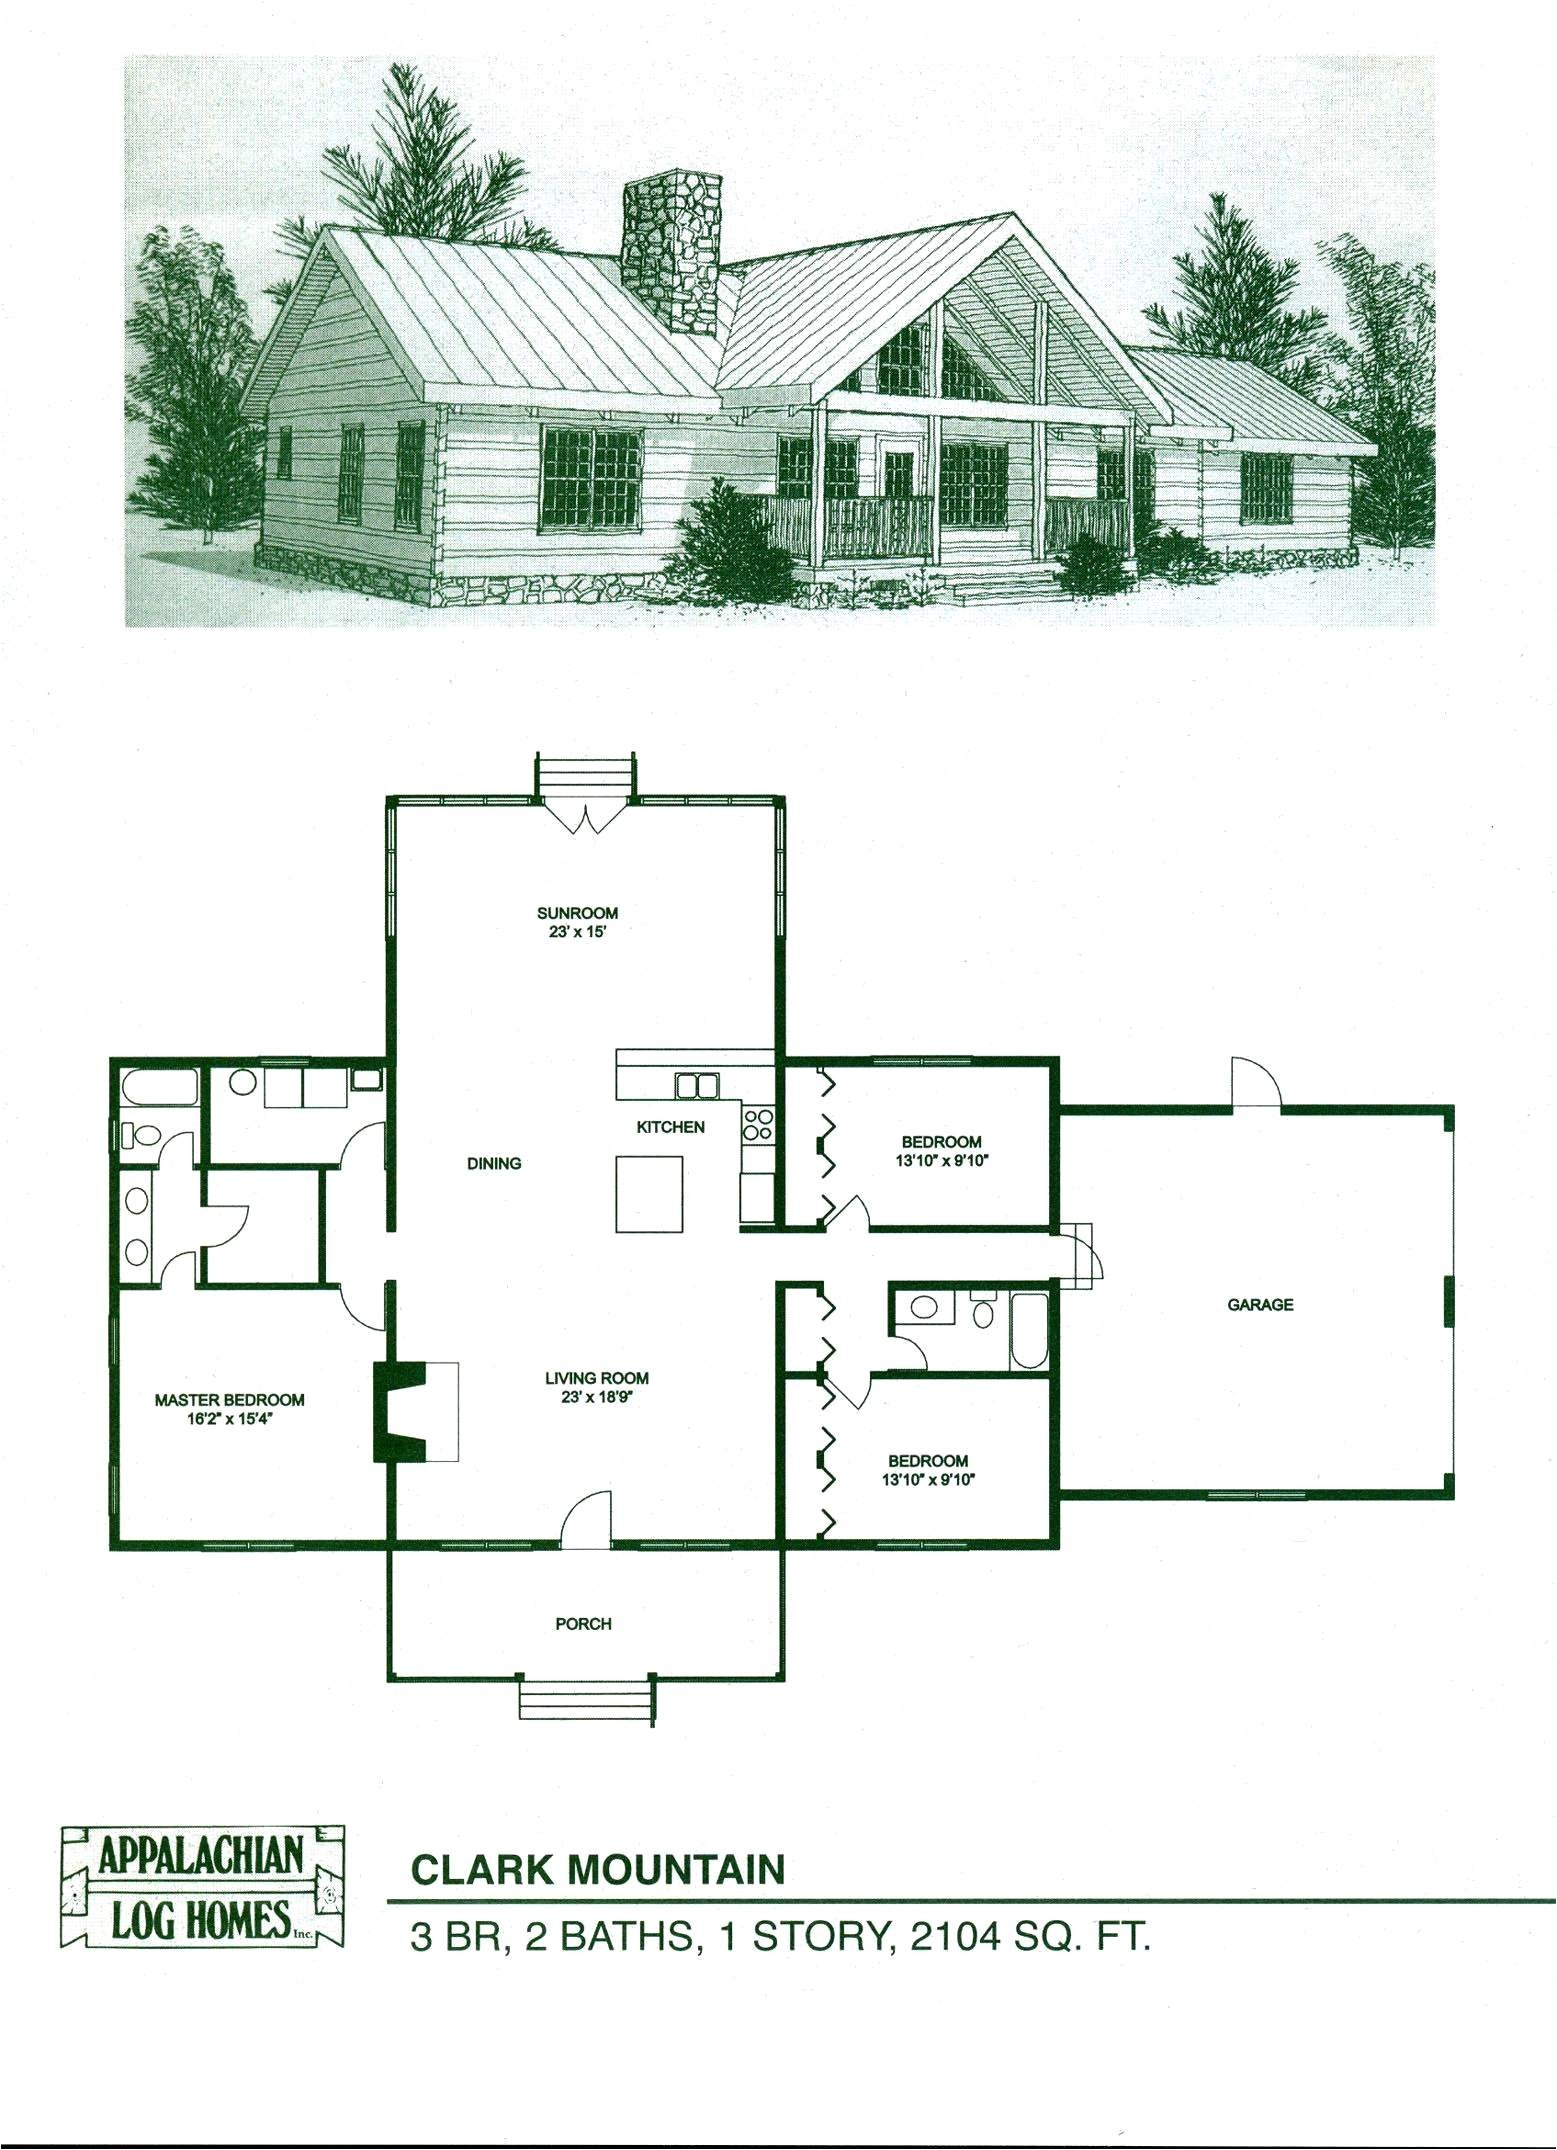 modular home floor plans missouri beautiful log cabin home floor plans luxury log cabin floor plans awesome log